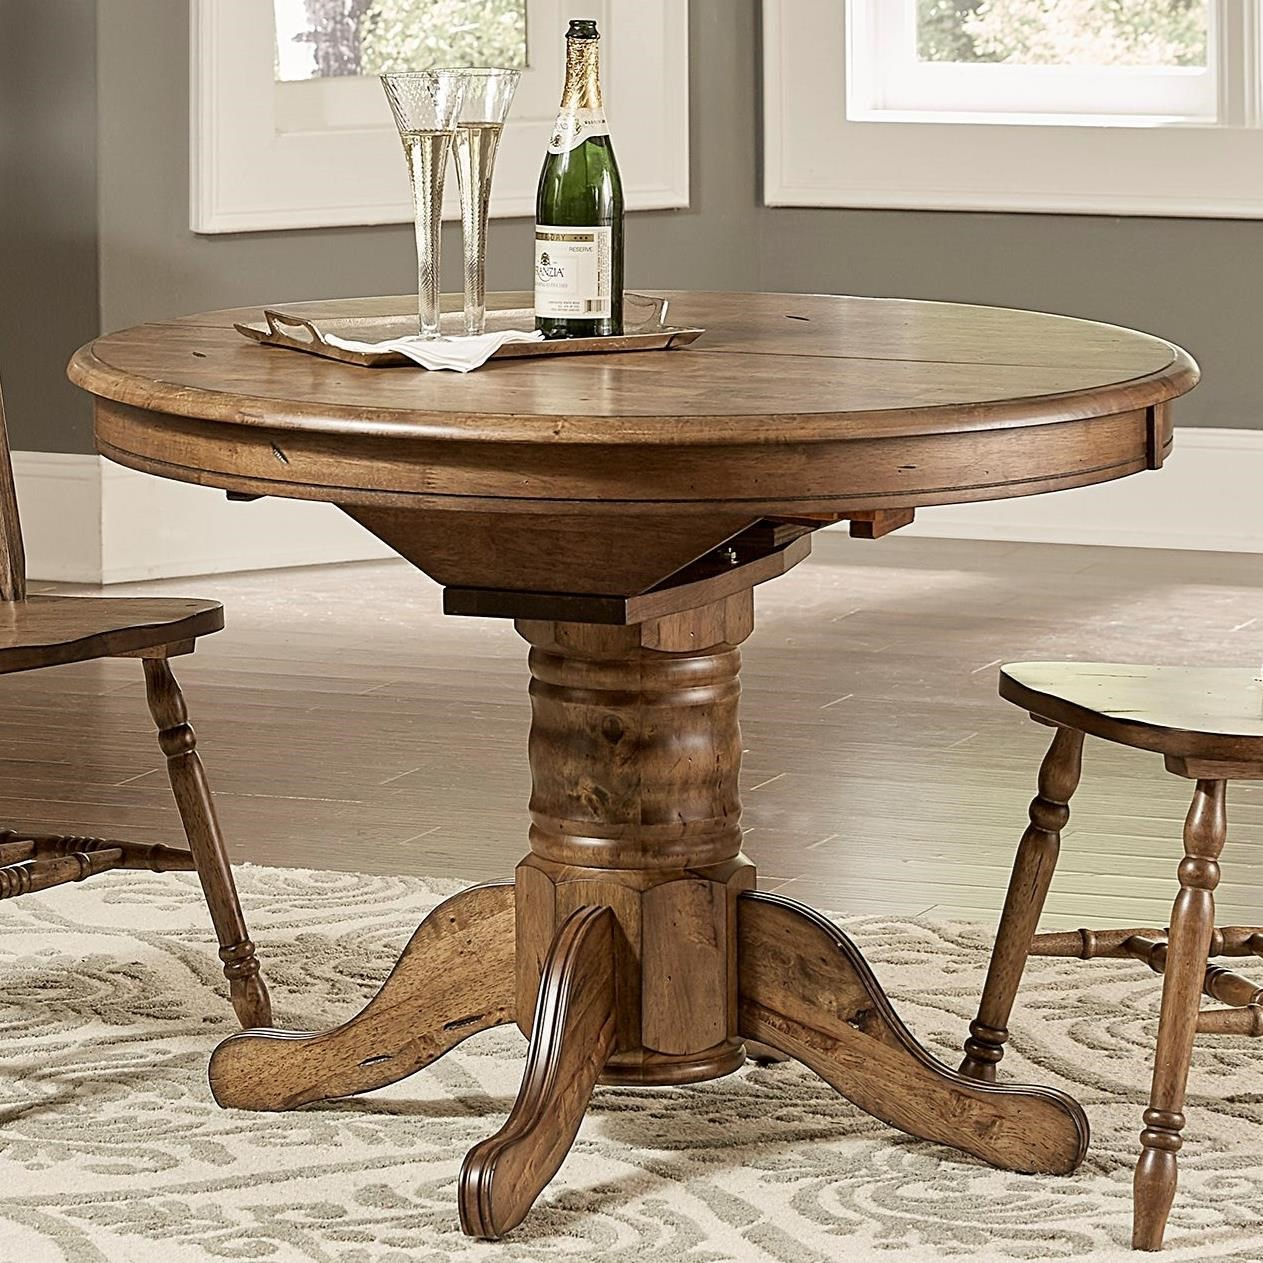 Dining Room Table Leaves: Winchenton Transitional Oval Pedestal Dining Table With